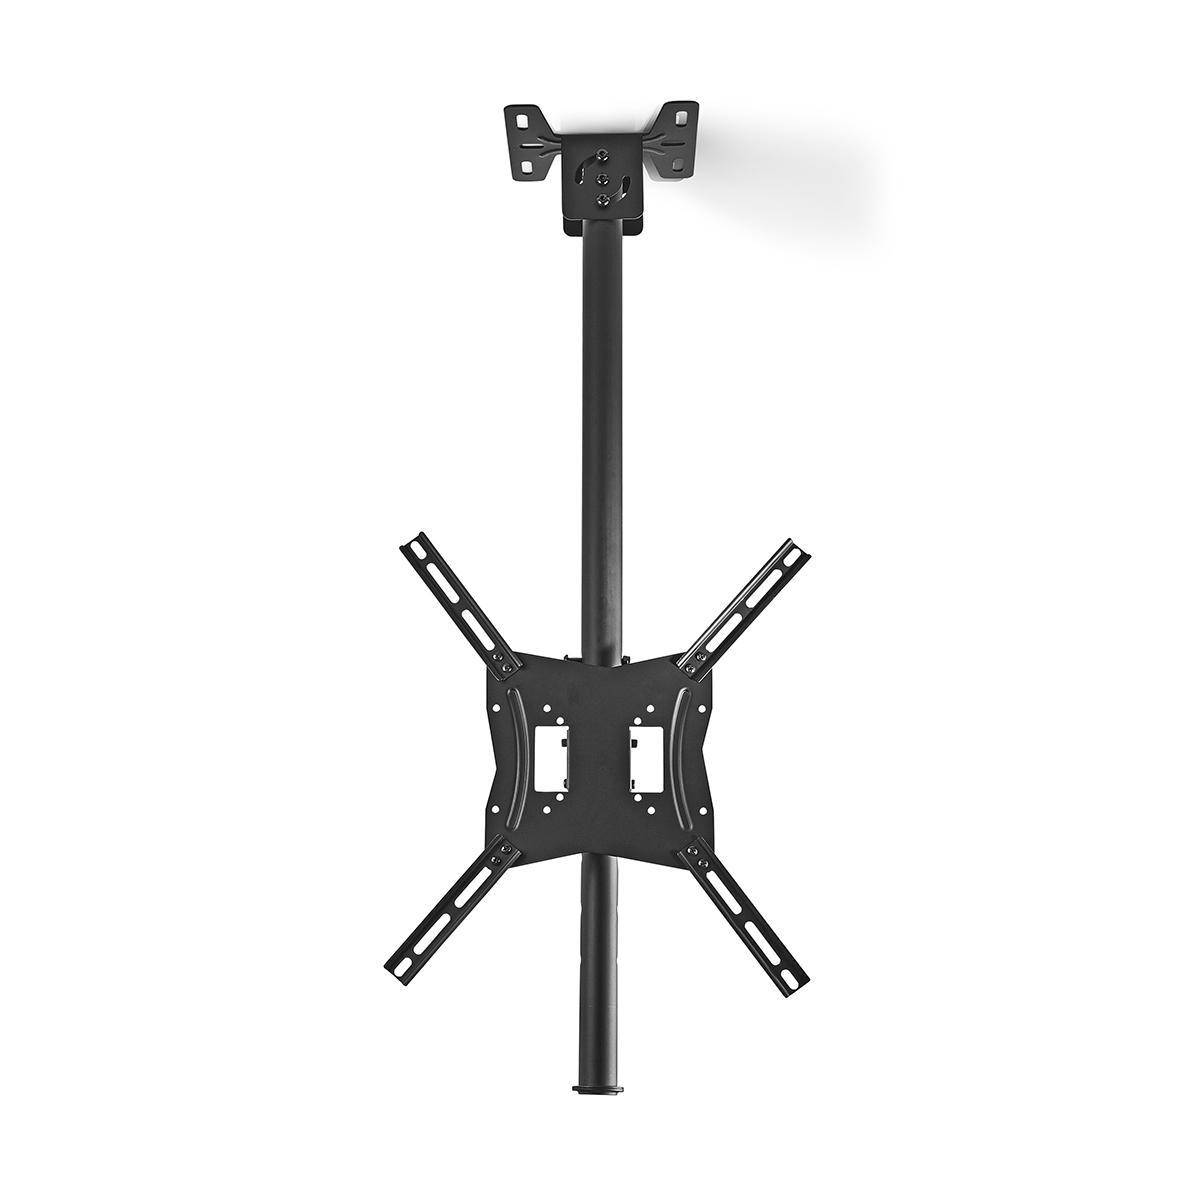 This TVCM1330BK ceiling mount from Nedis® is the most versatile solution for hanging your TV. Why would you let your TV take up more space than necessary? With this ceiling bracket you can easily hang your TV from the ceiling.